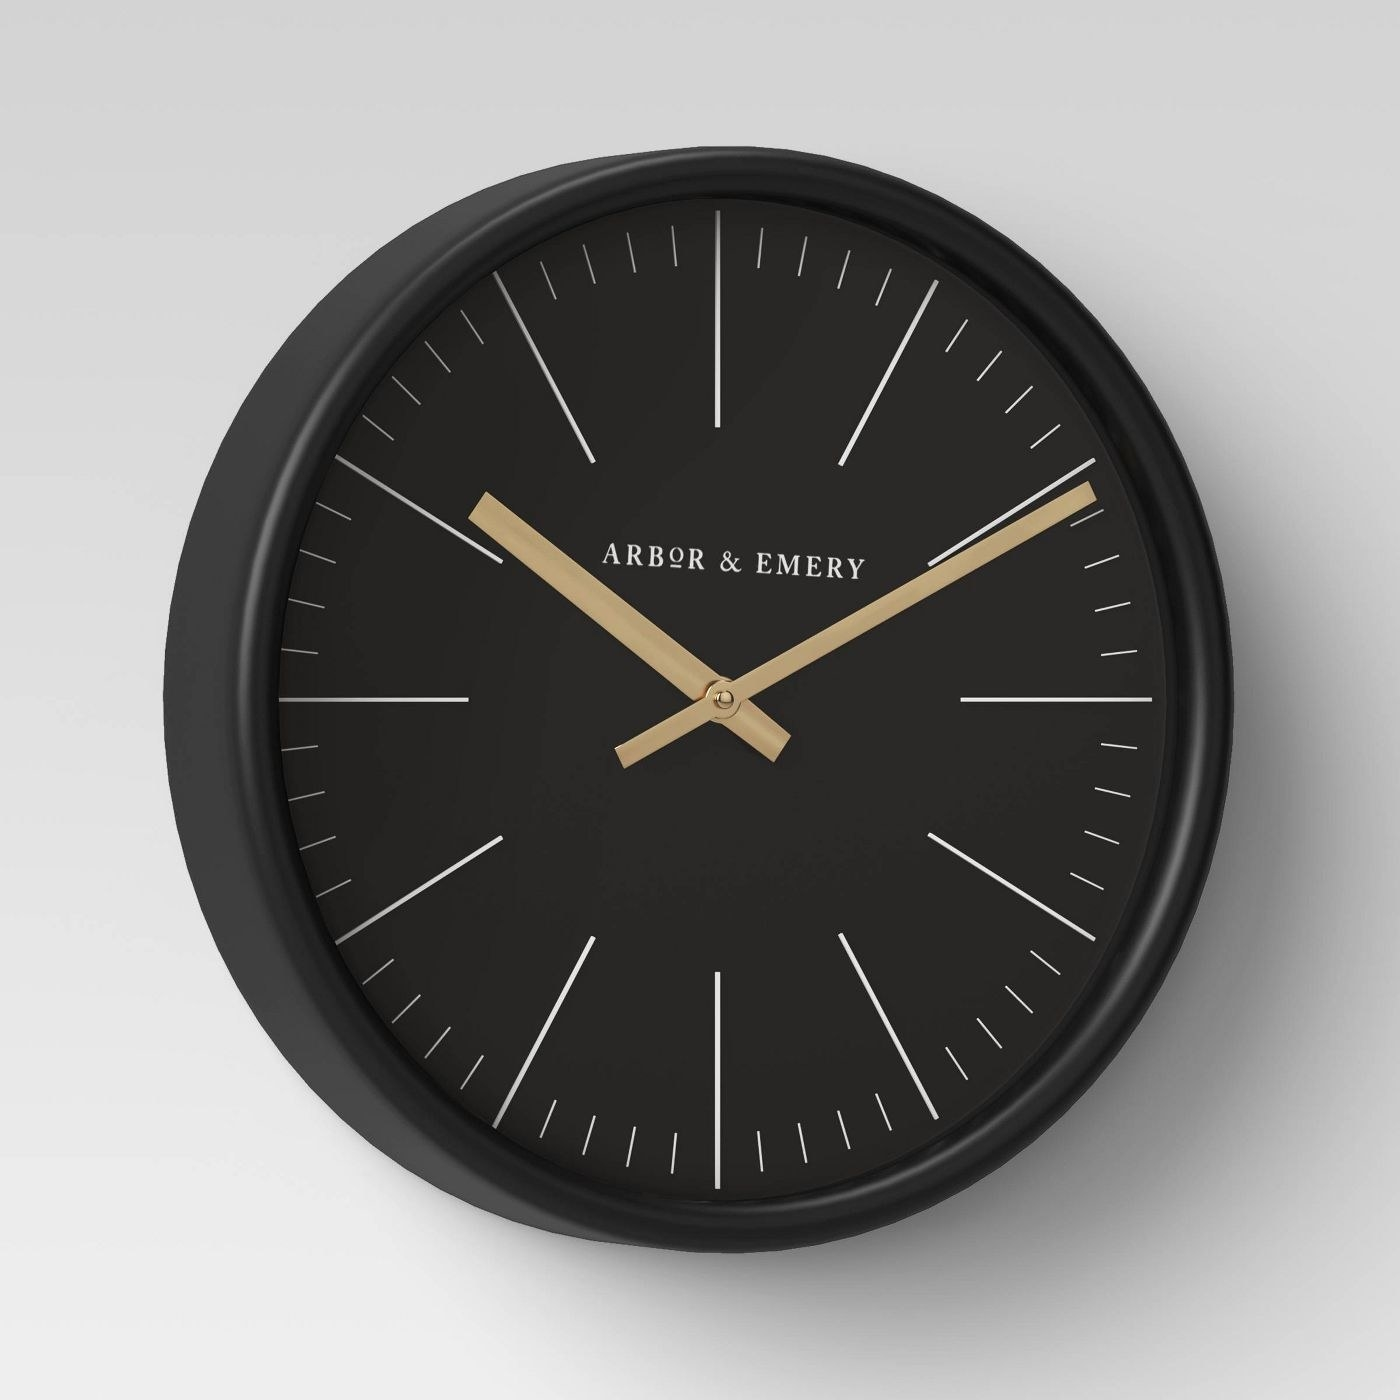 A black and brass clock in a home